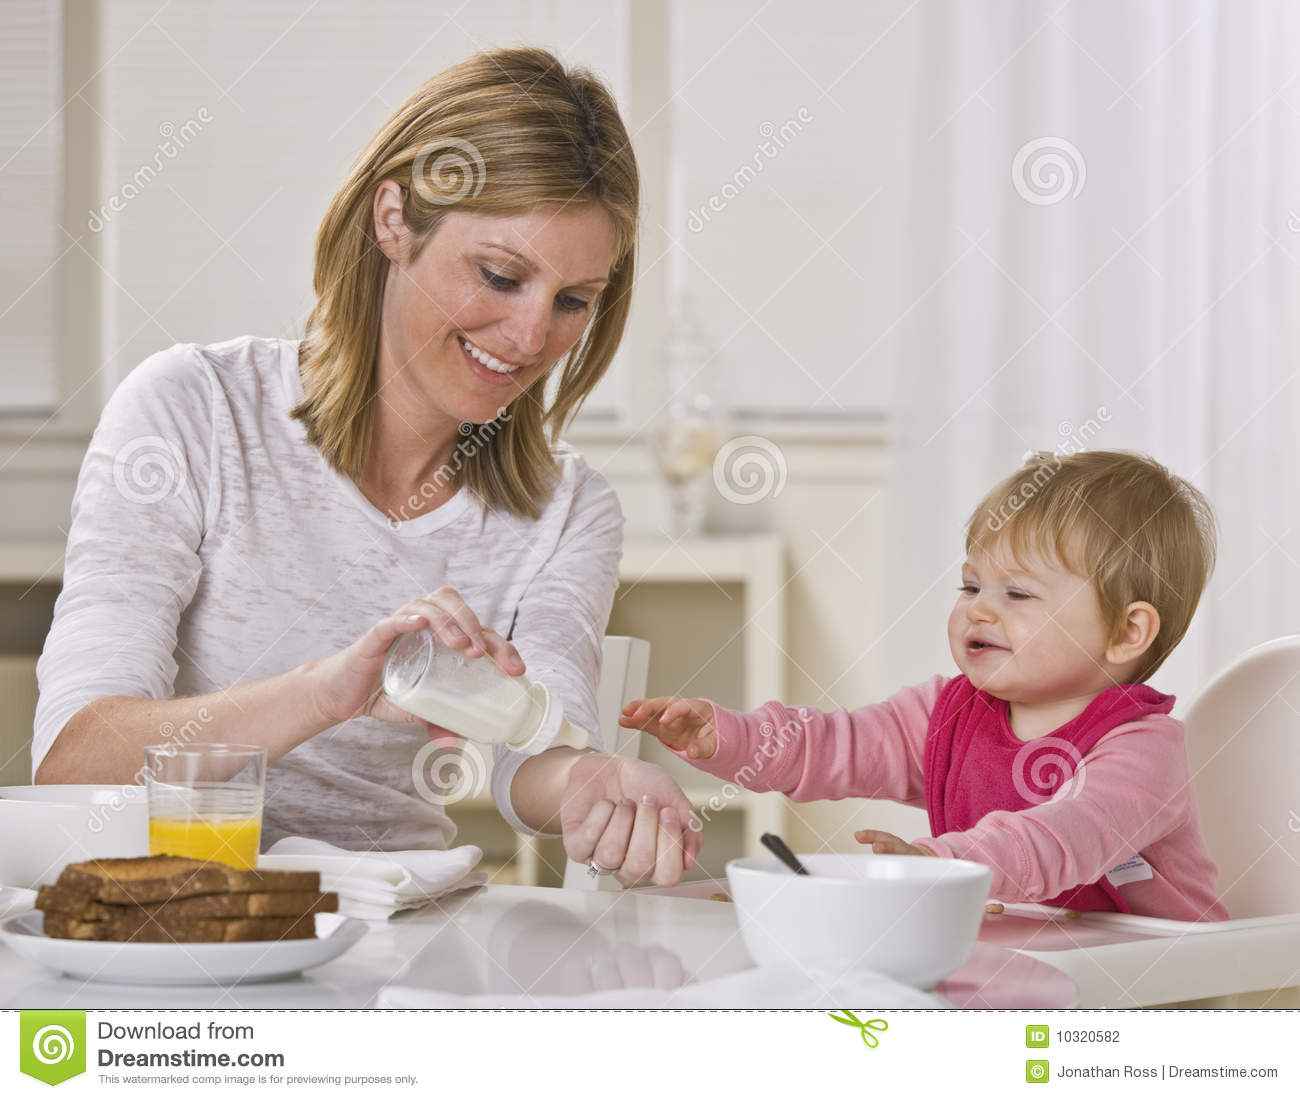 baby table chair how to make a bean bag without sewing mom and eating breakfast stock photo - image: 10320582